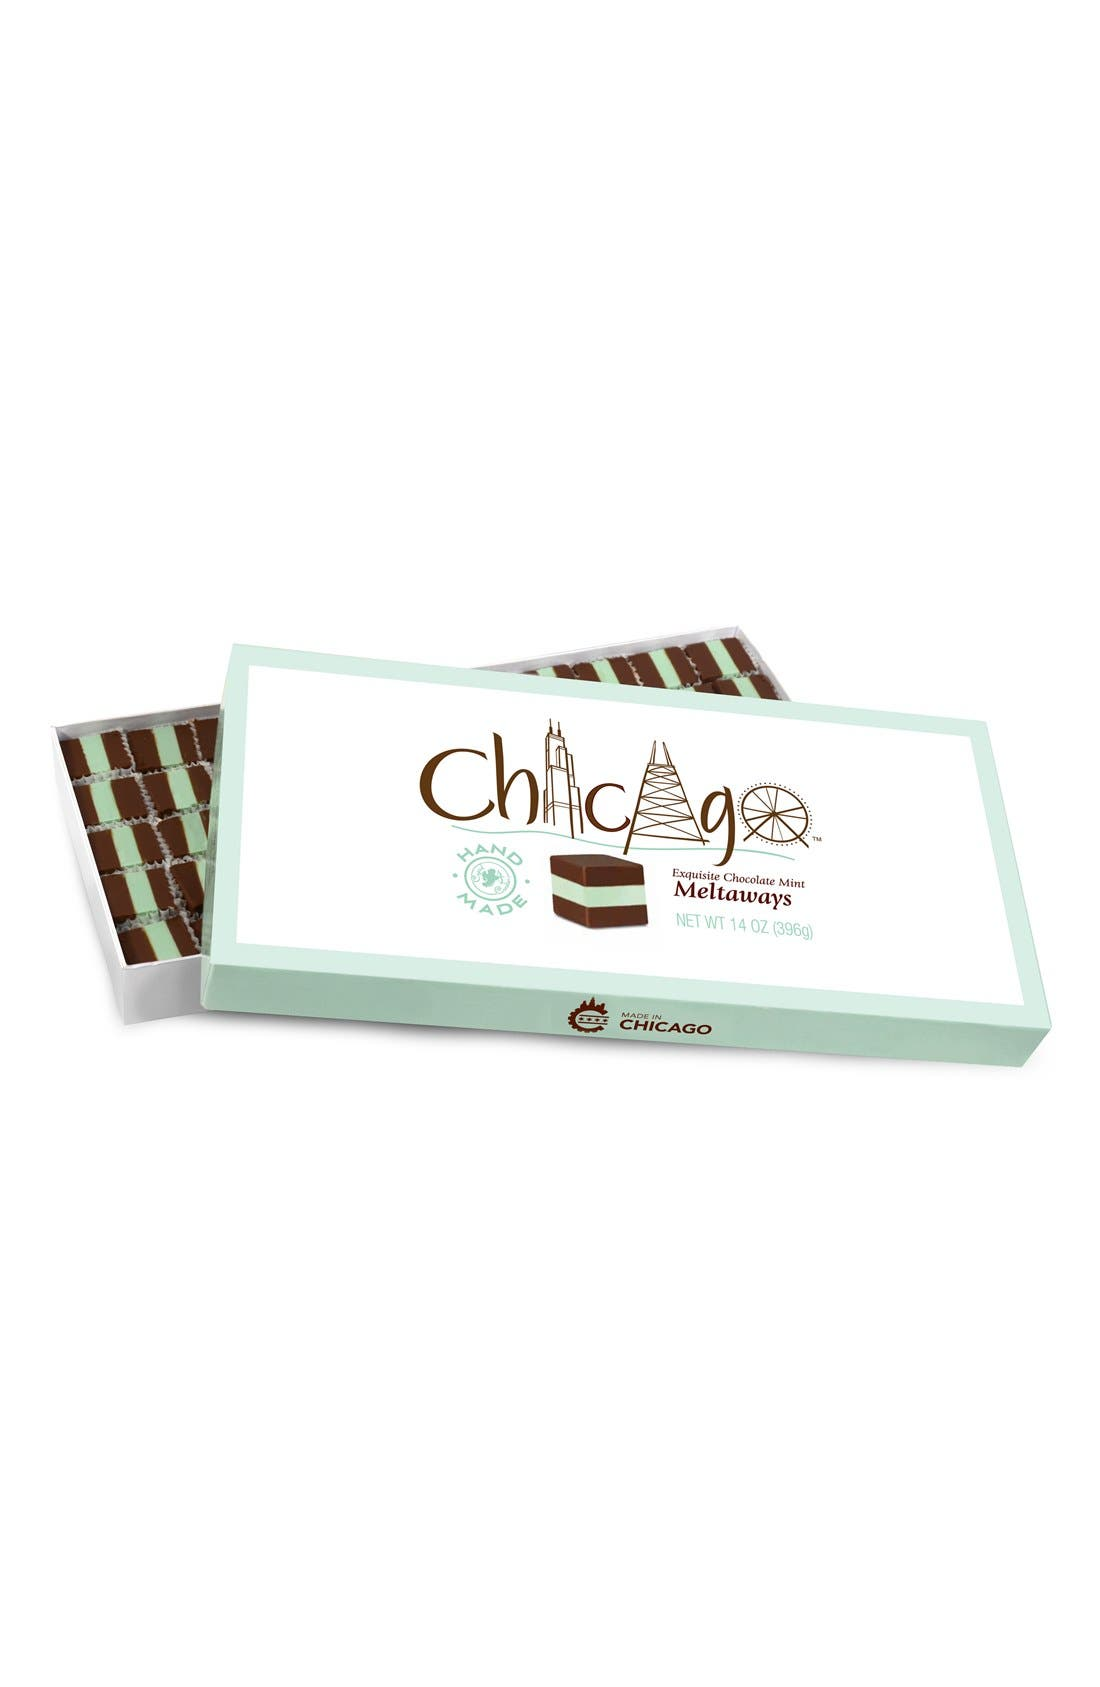 Main Image - Chicago Classic Confections Chocolate Mint Meltaways